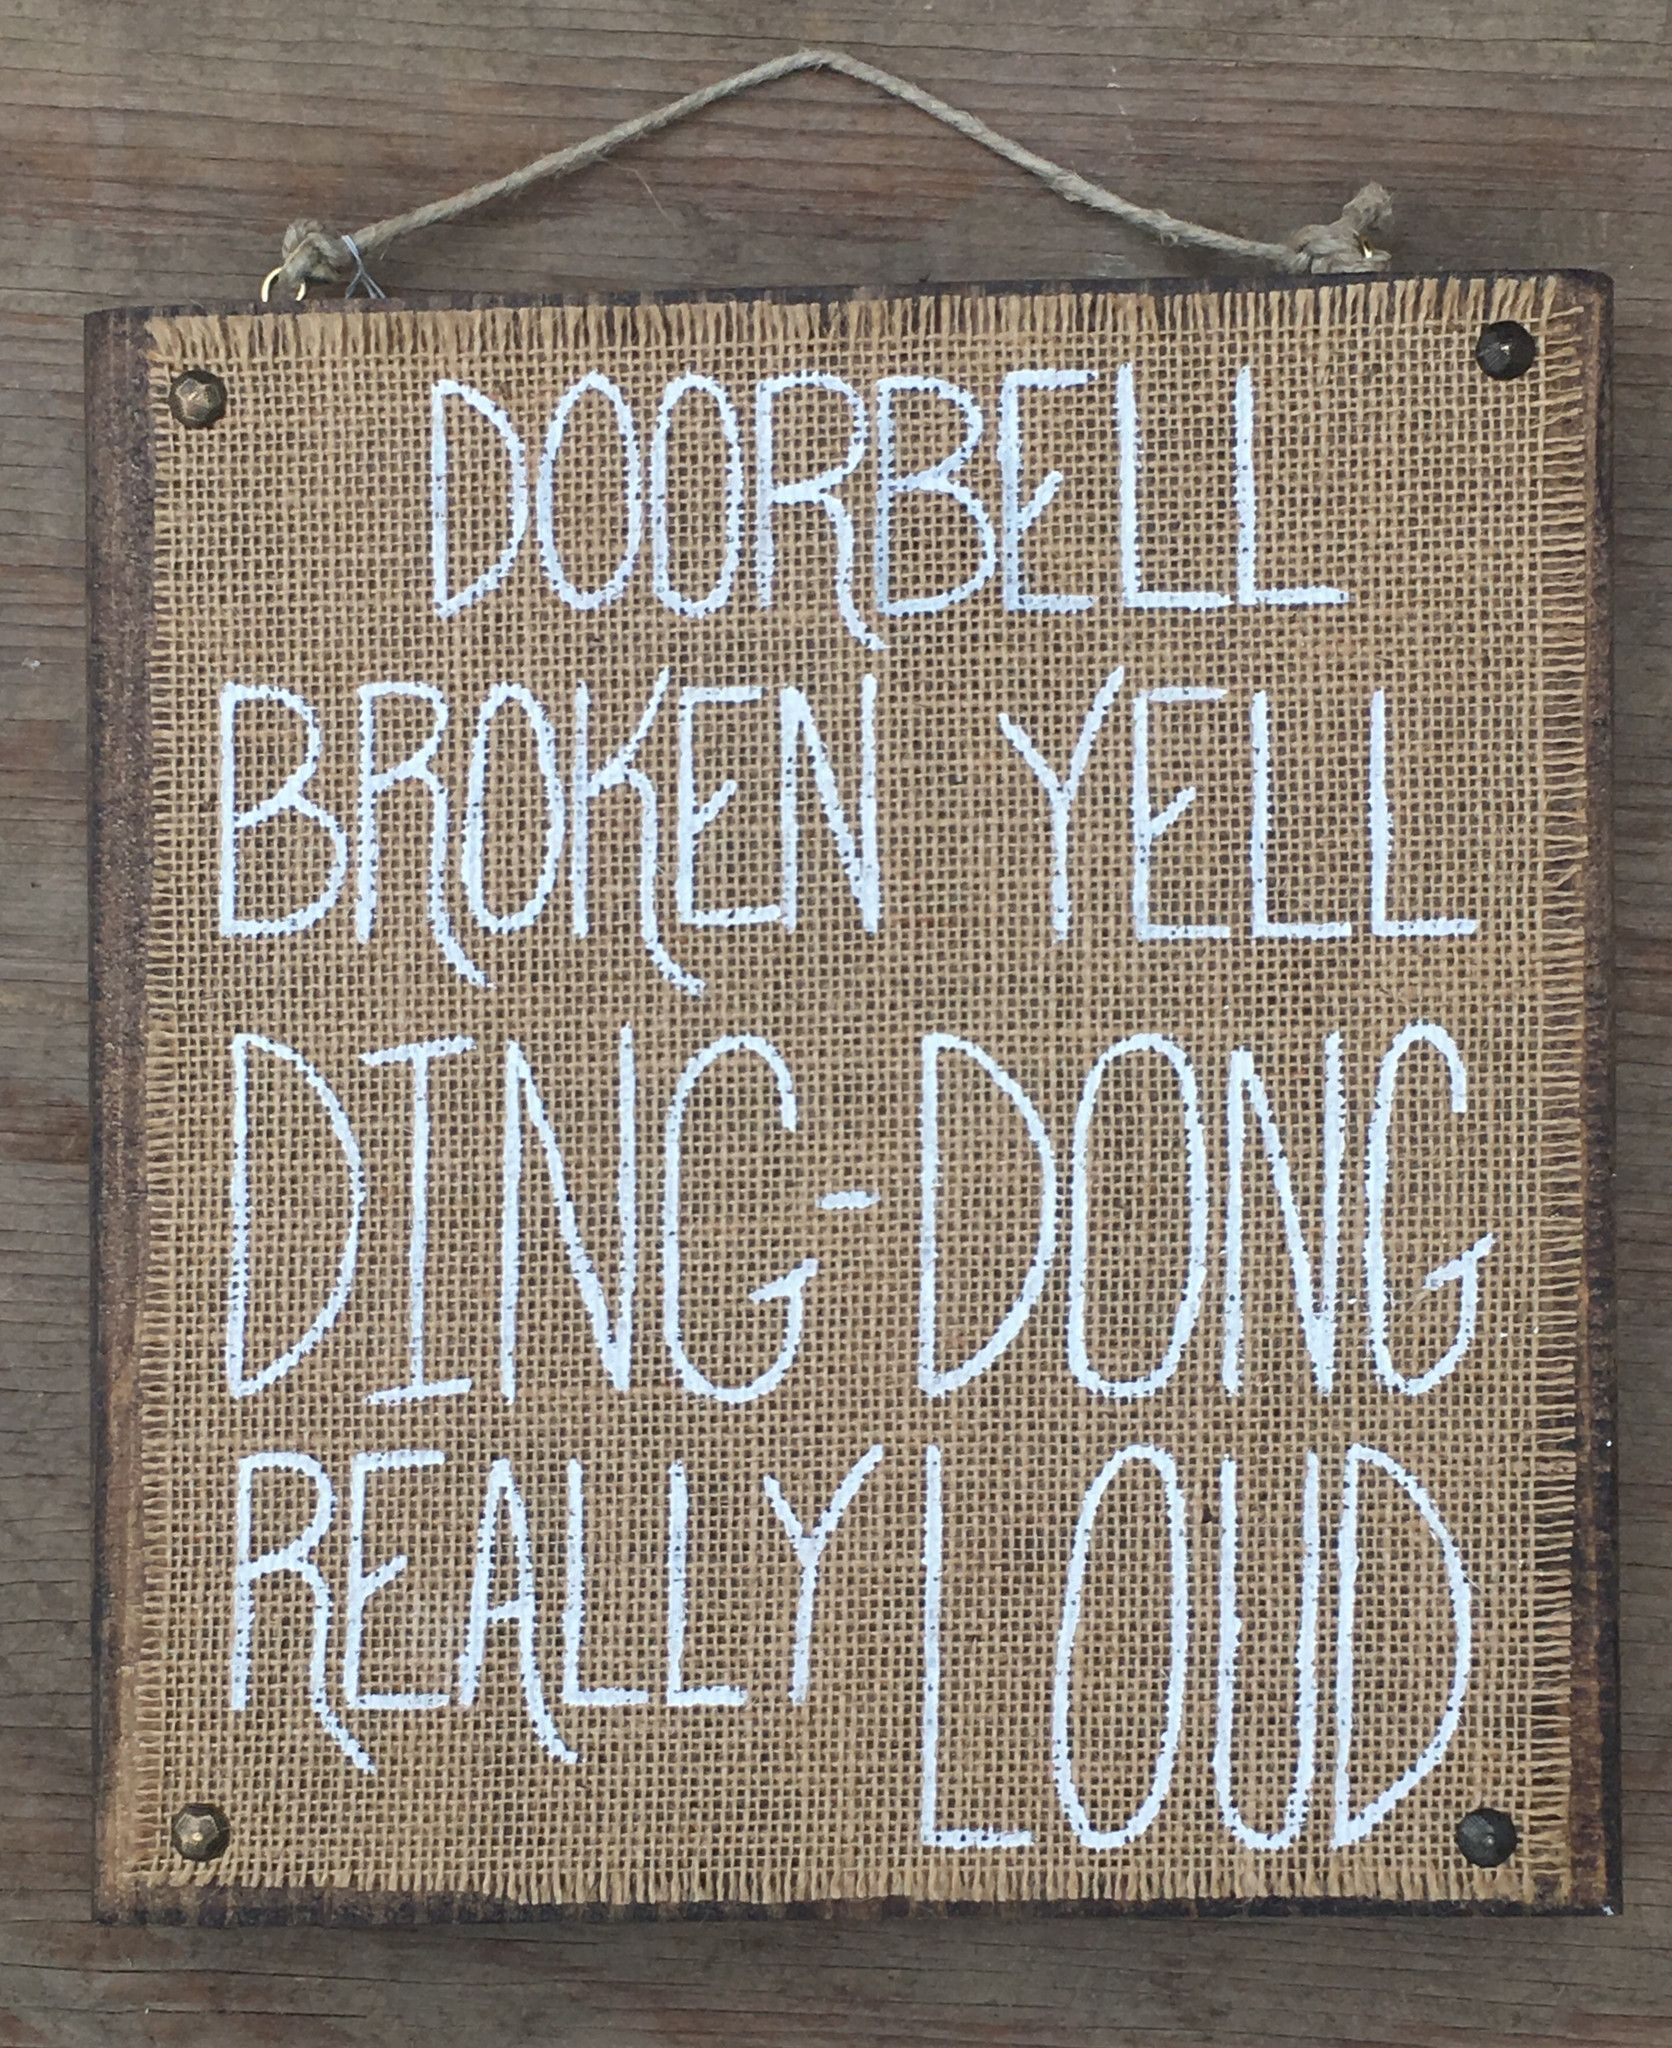 Doorbell broken yell ding dong really loud wood sign wood signs